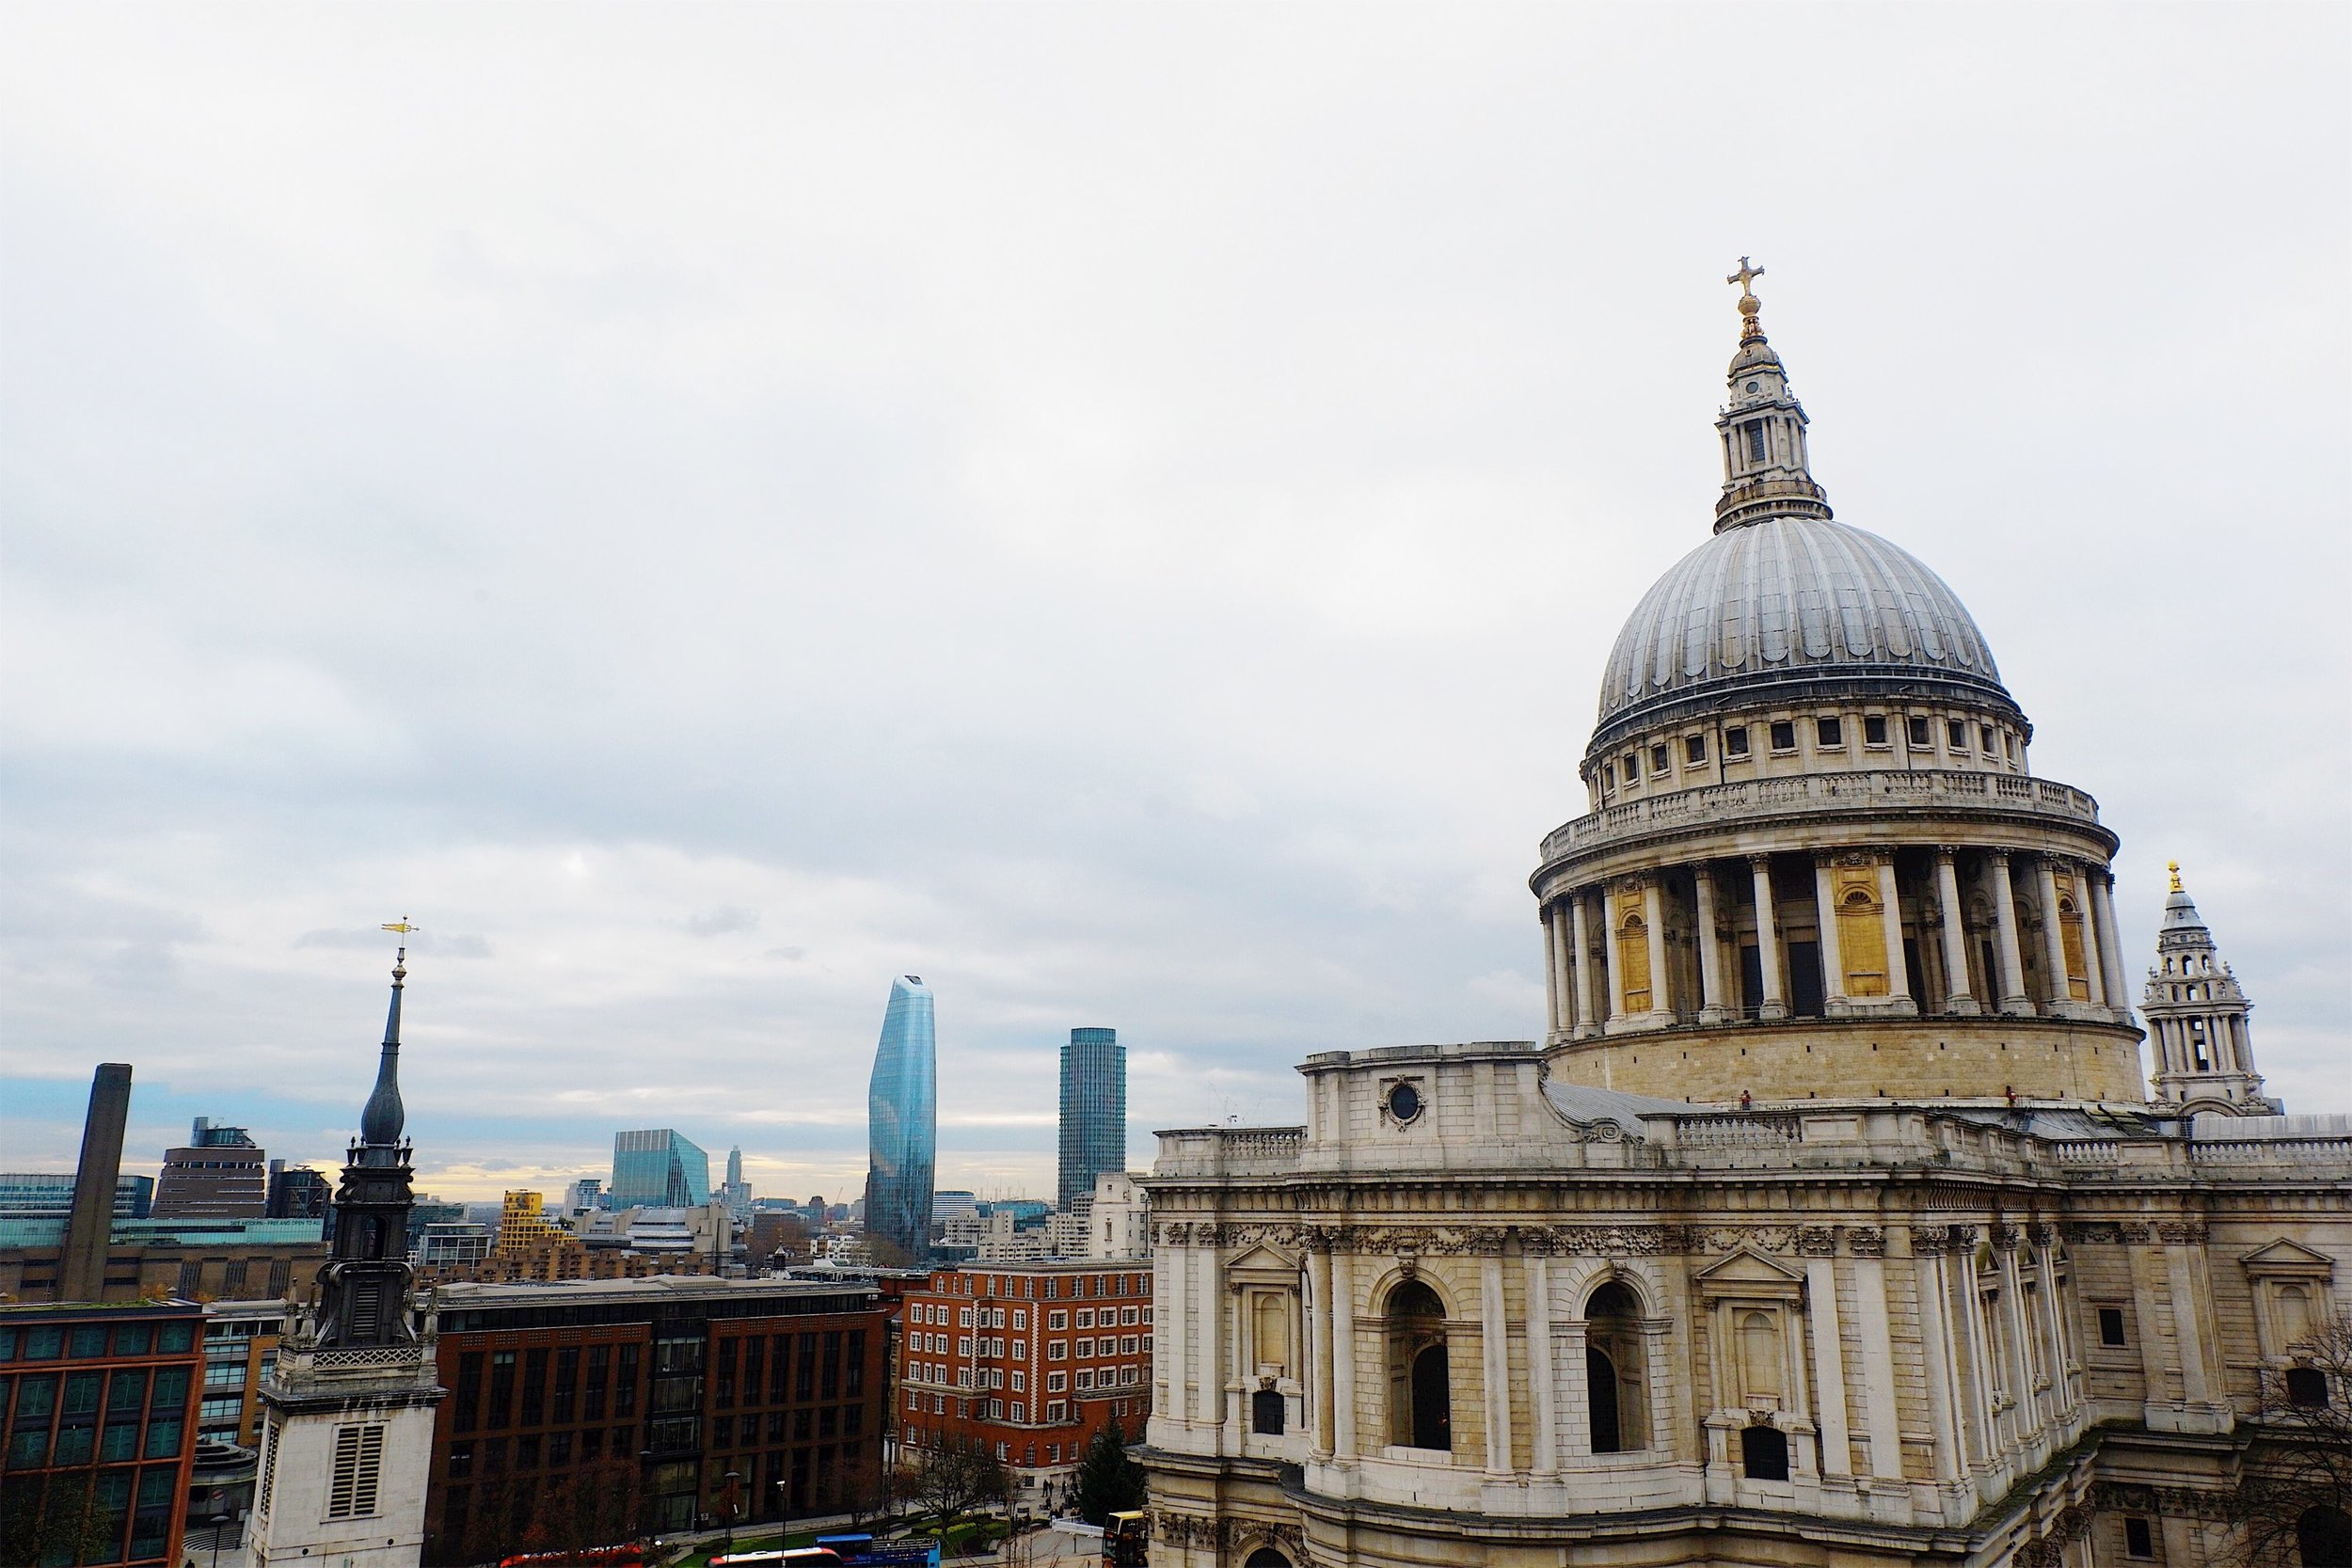 The Best Views in London - Our founder is a 2x London expat - so we're experts in London travel. Here's where to go for the best (free) views of the iconic London Skyline.